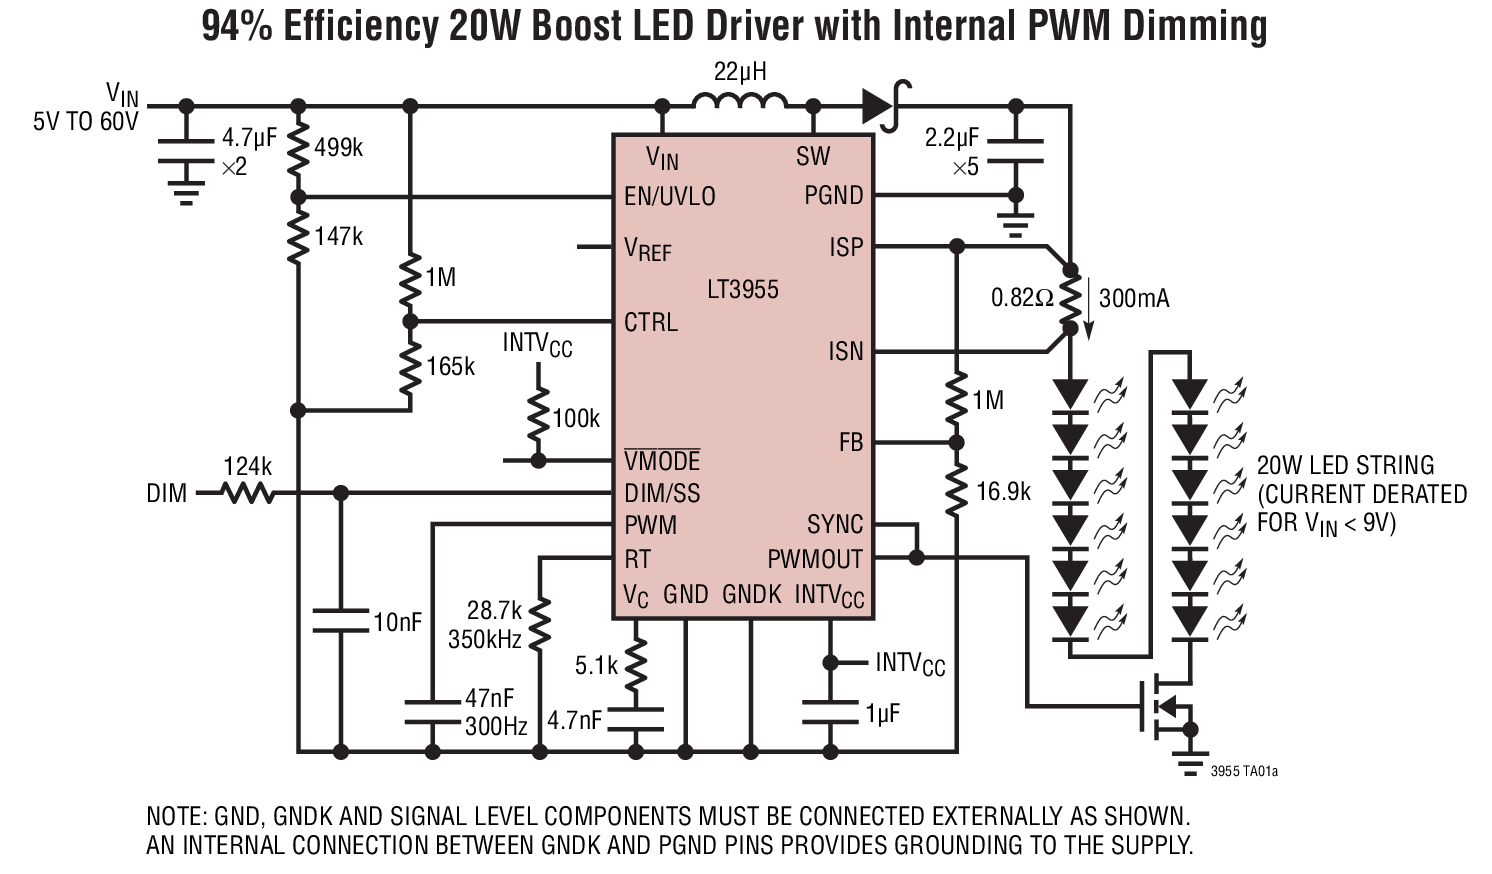 High Voltage Boost Led Controller Provides 3000 1 Pwm Dimming Ratio